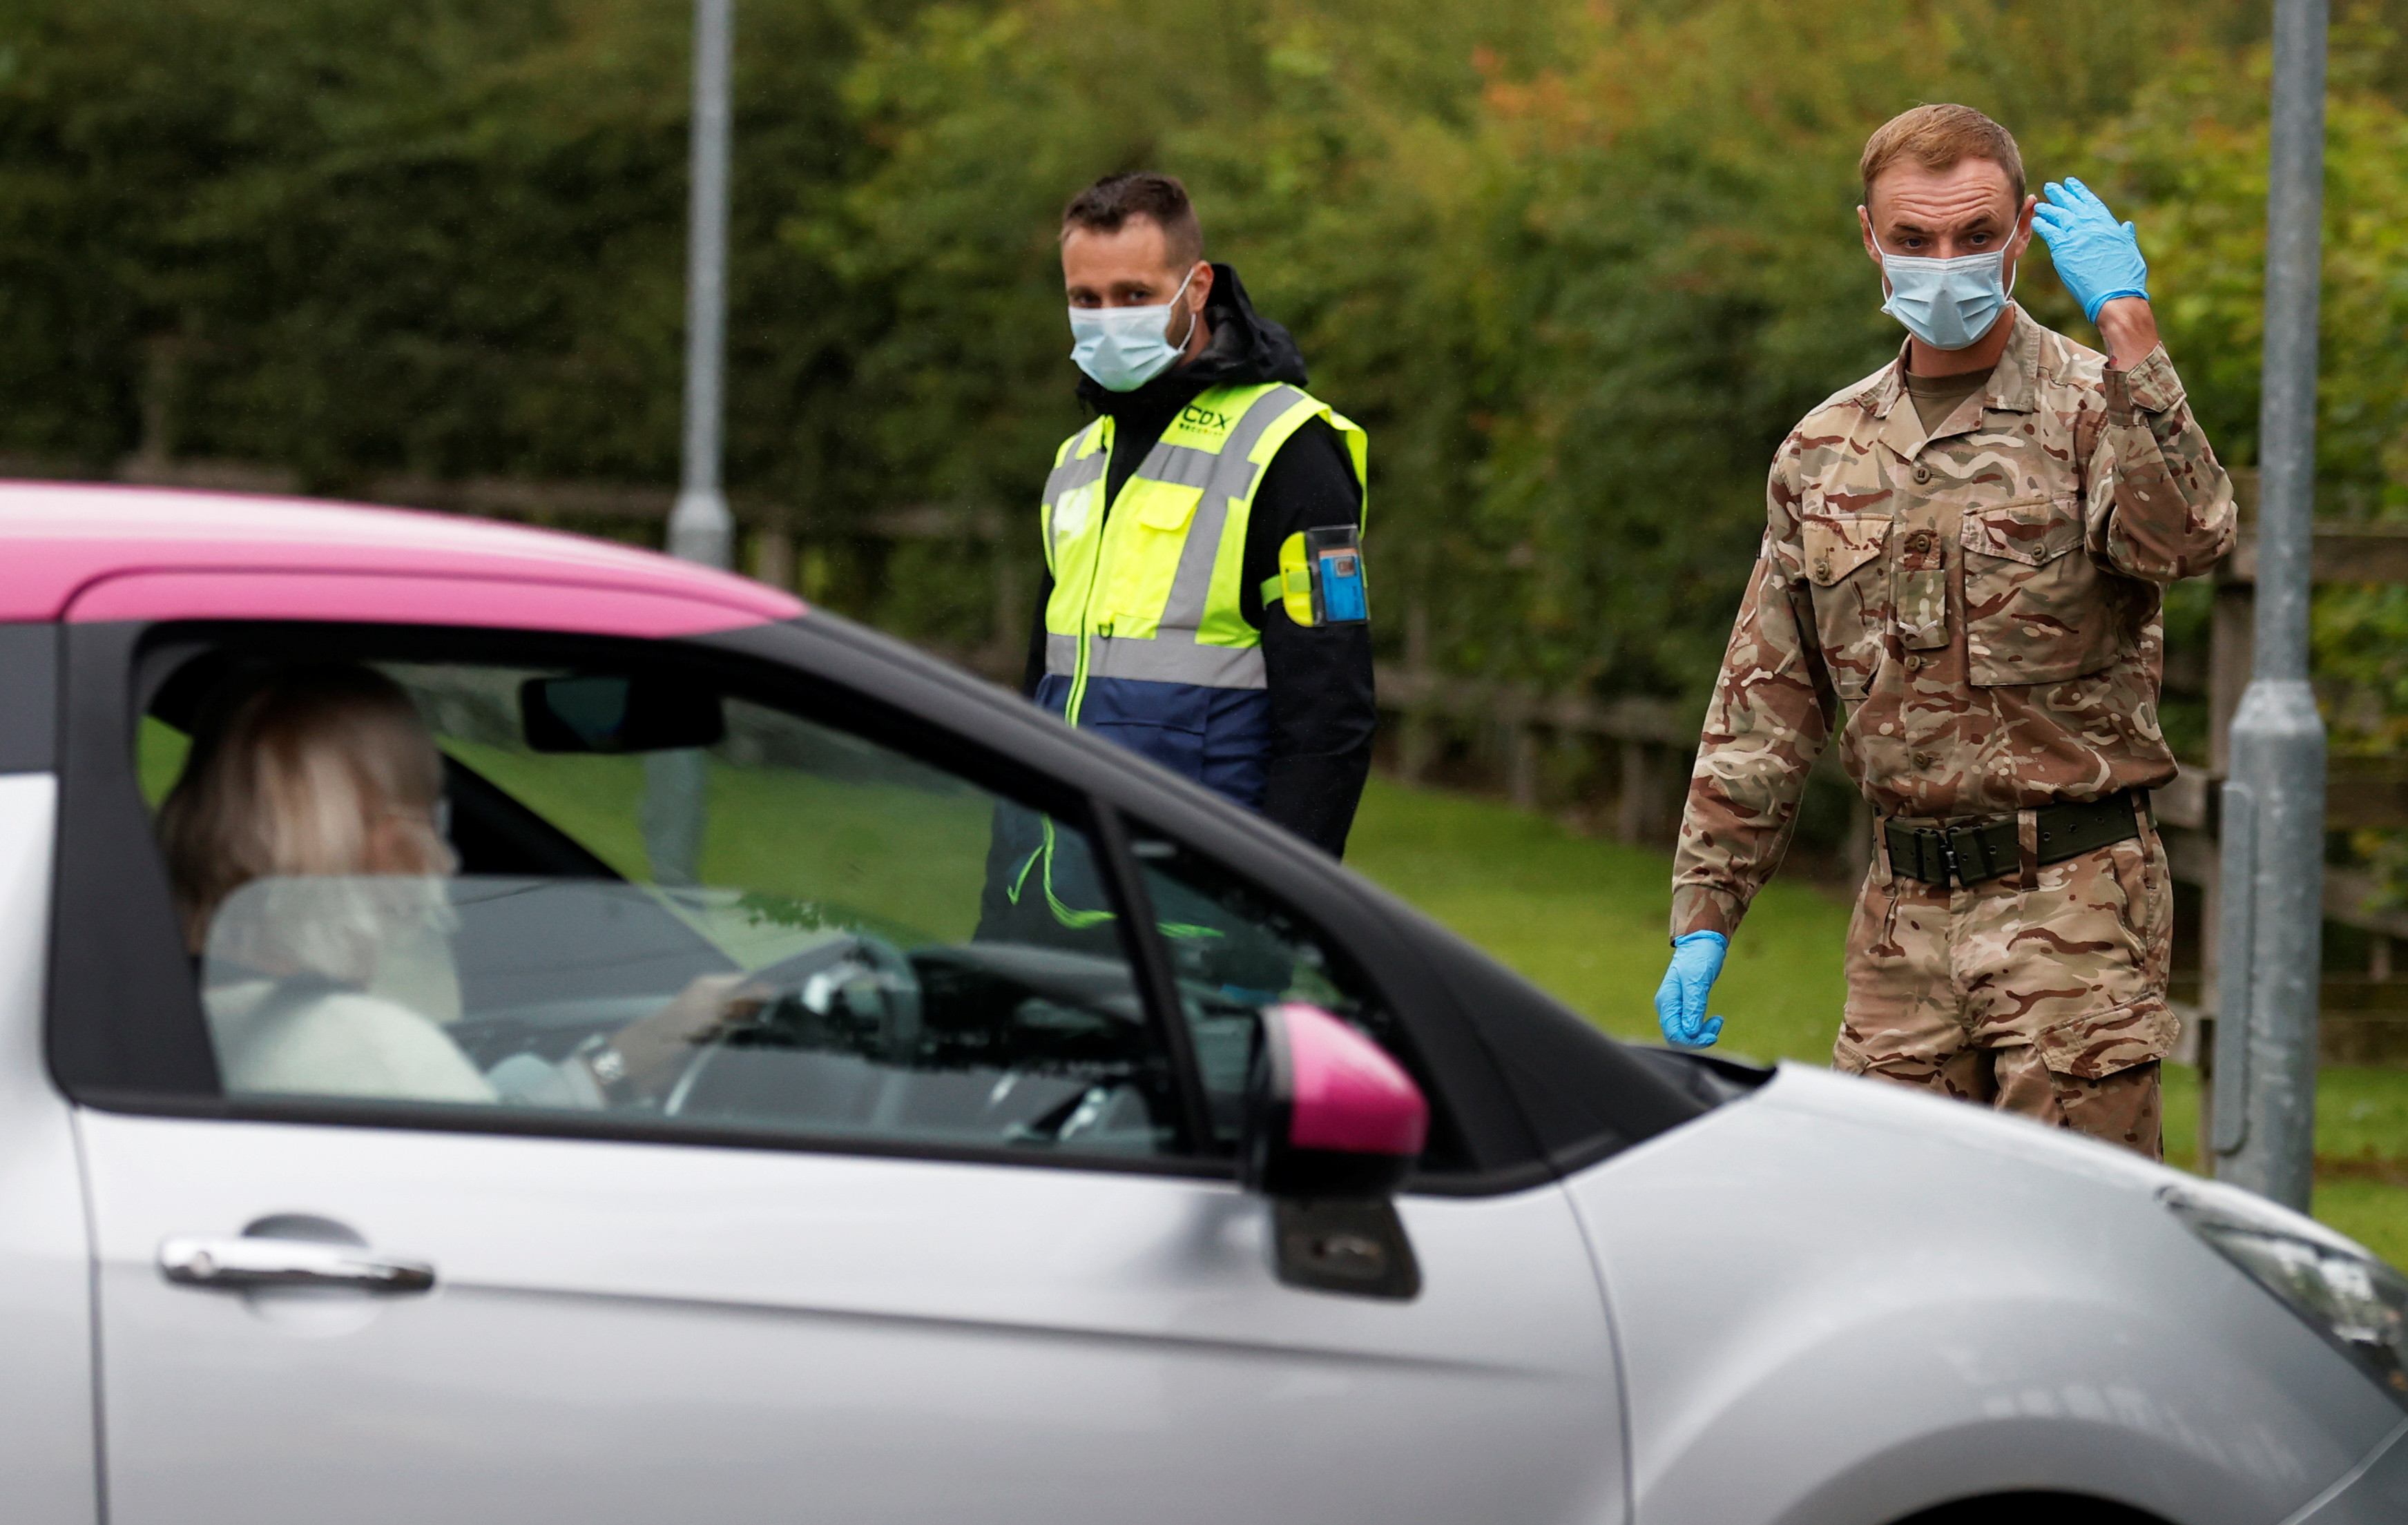 A soldier wearing a protective mask gestures as he directs cars into a coronavirus disease (COVID-19) testing center, as Blackburn with Darwen Council imposes local restrictions in an effort to avoid a local lockdown being forced upon the area, amid the coronavirus disease (COVID-19) outbreak, in Blackburn, Britain July 16, 2020. REUTERS/Phil Noble - RC2AUH9DL0IJ